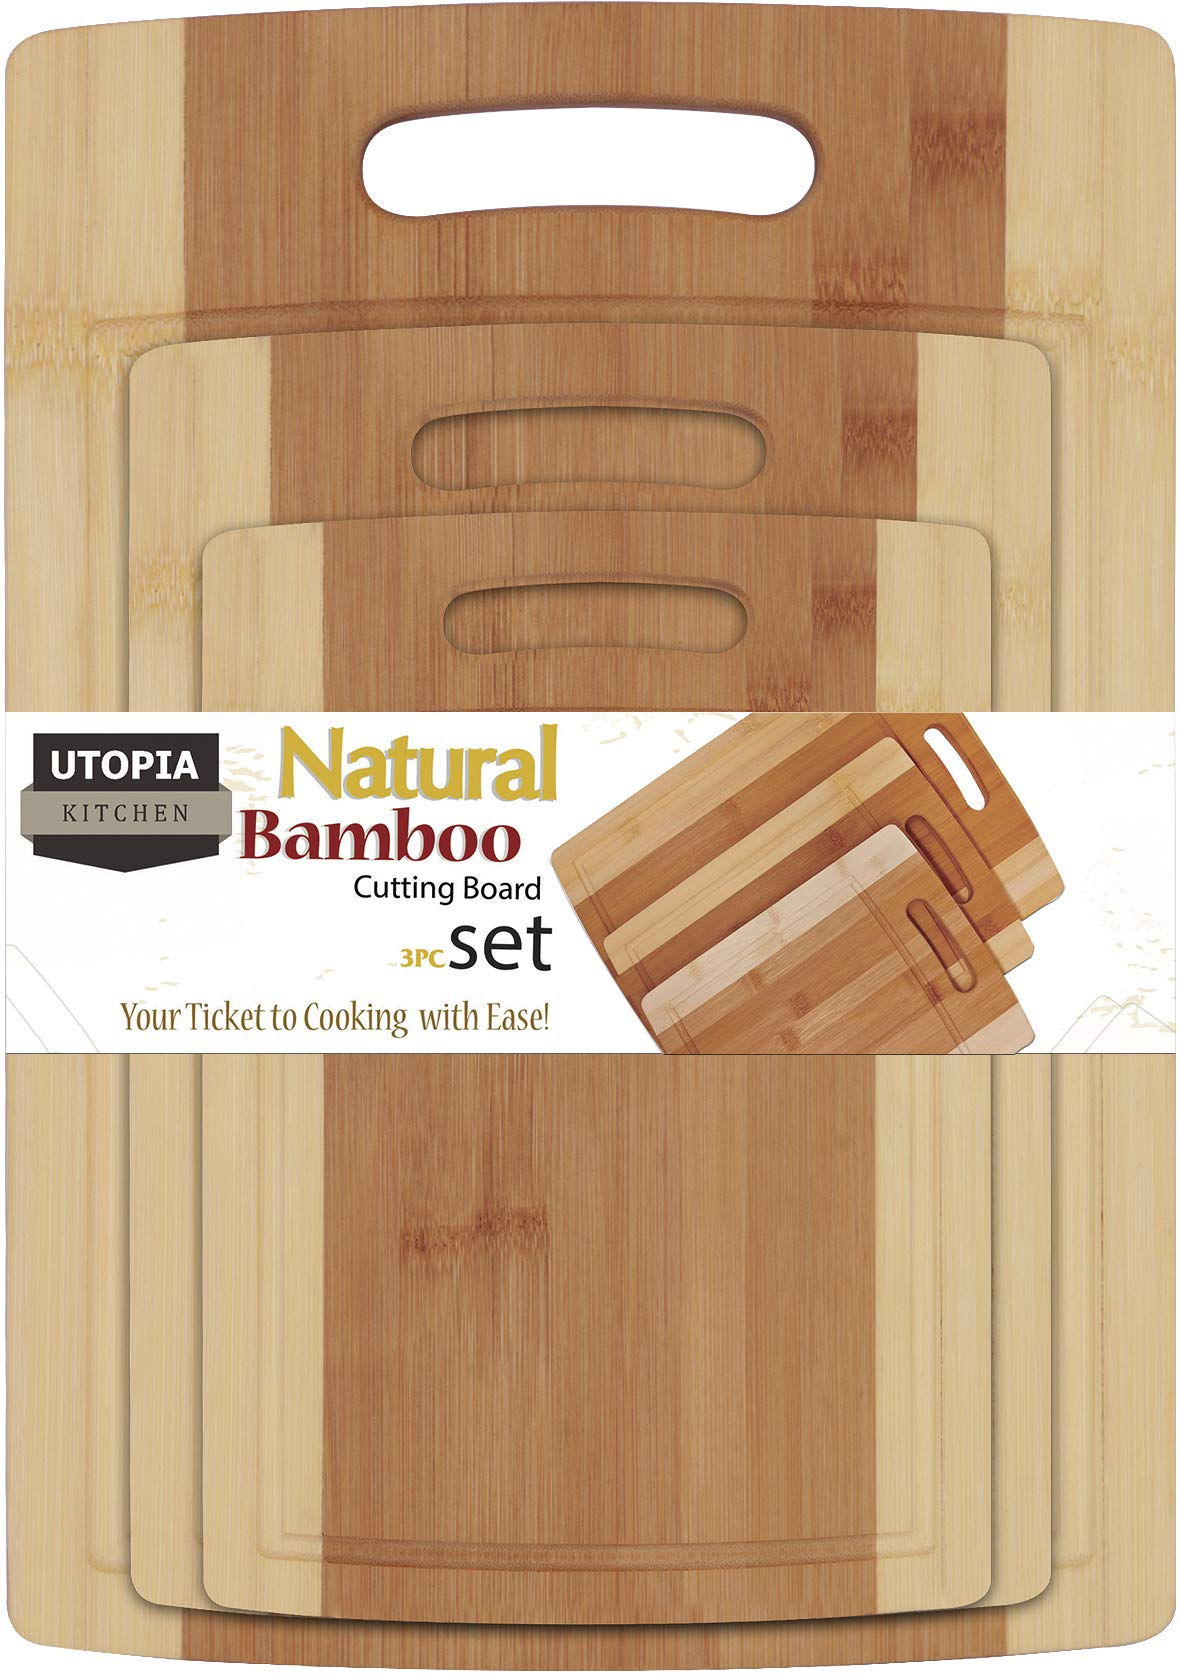 Utopia Kitchen Natural Bamboo Cutting Boards with Juice Grooves - Wooden Cutting Boards 3 Piece Set by Utopia Kitchen